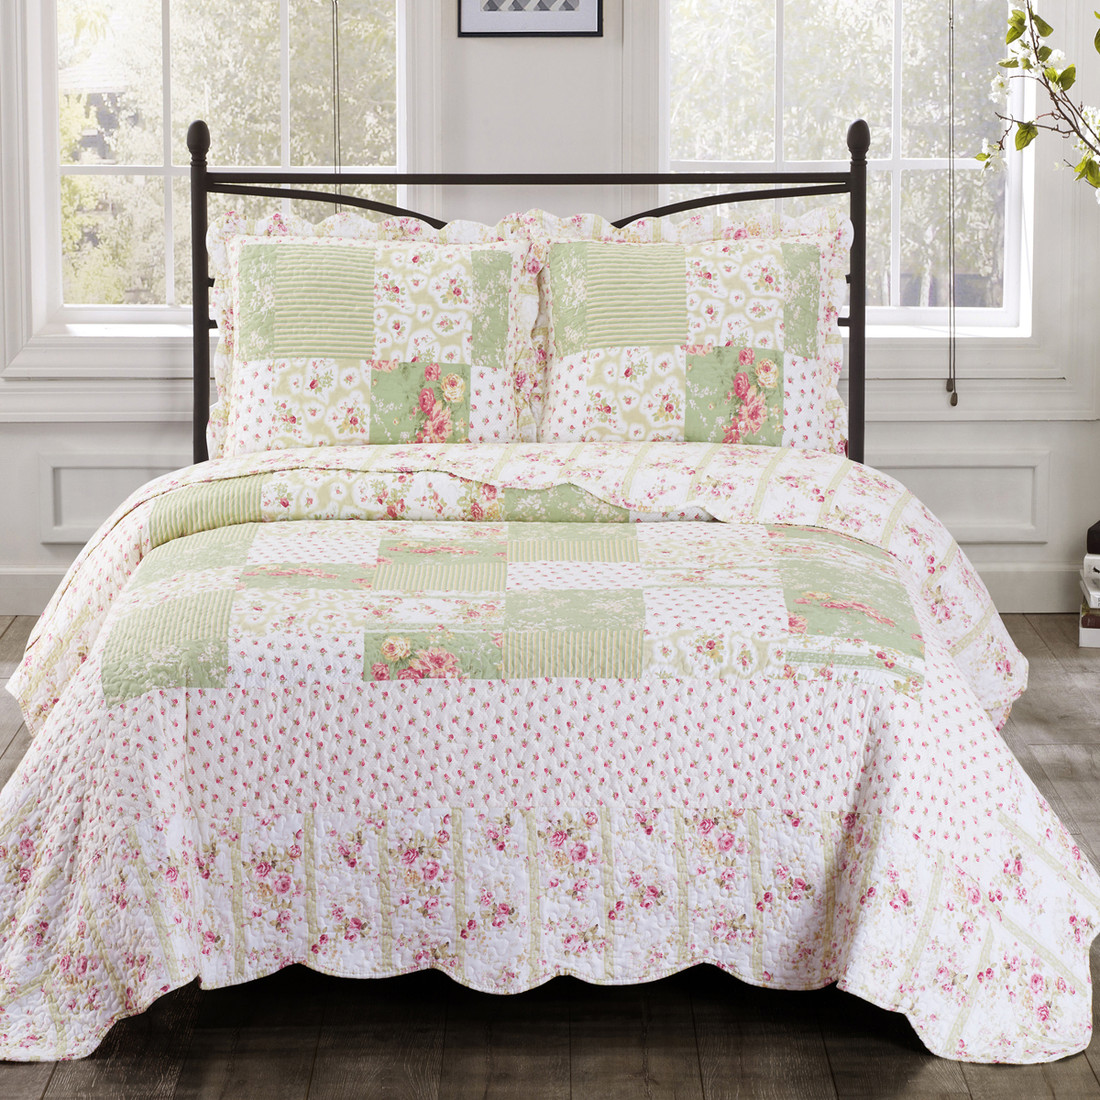 Upland Floral Design Sweet Home Quilted Coverlet Set